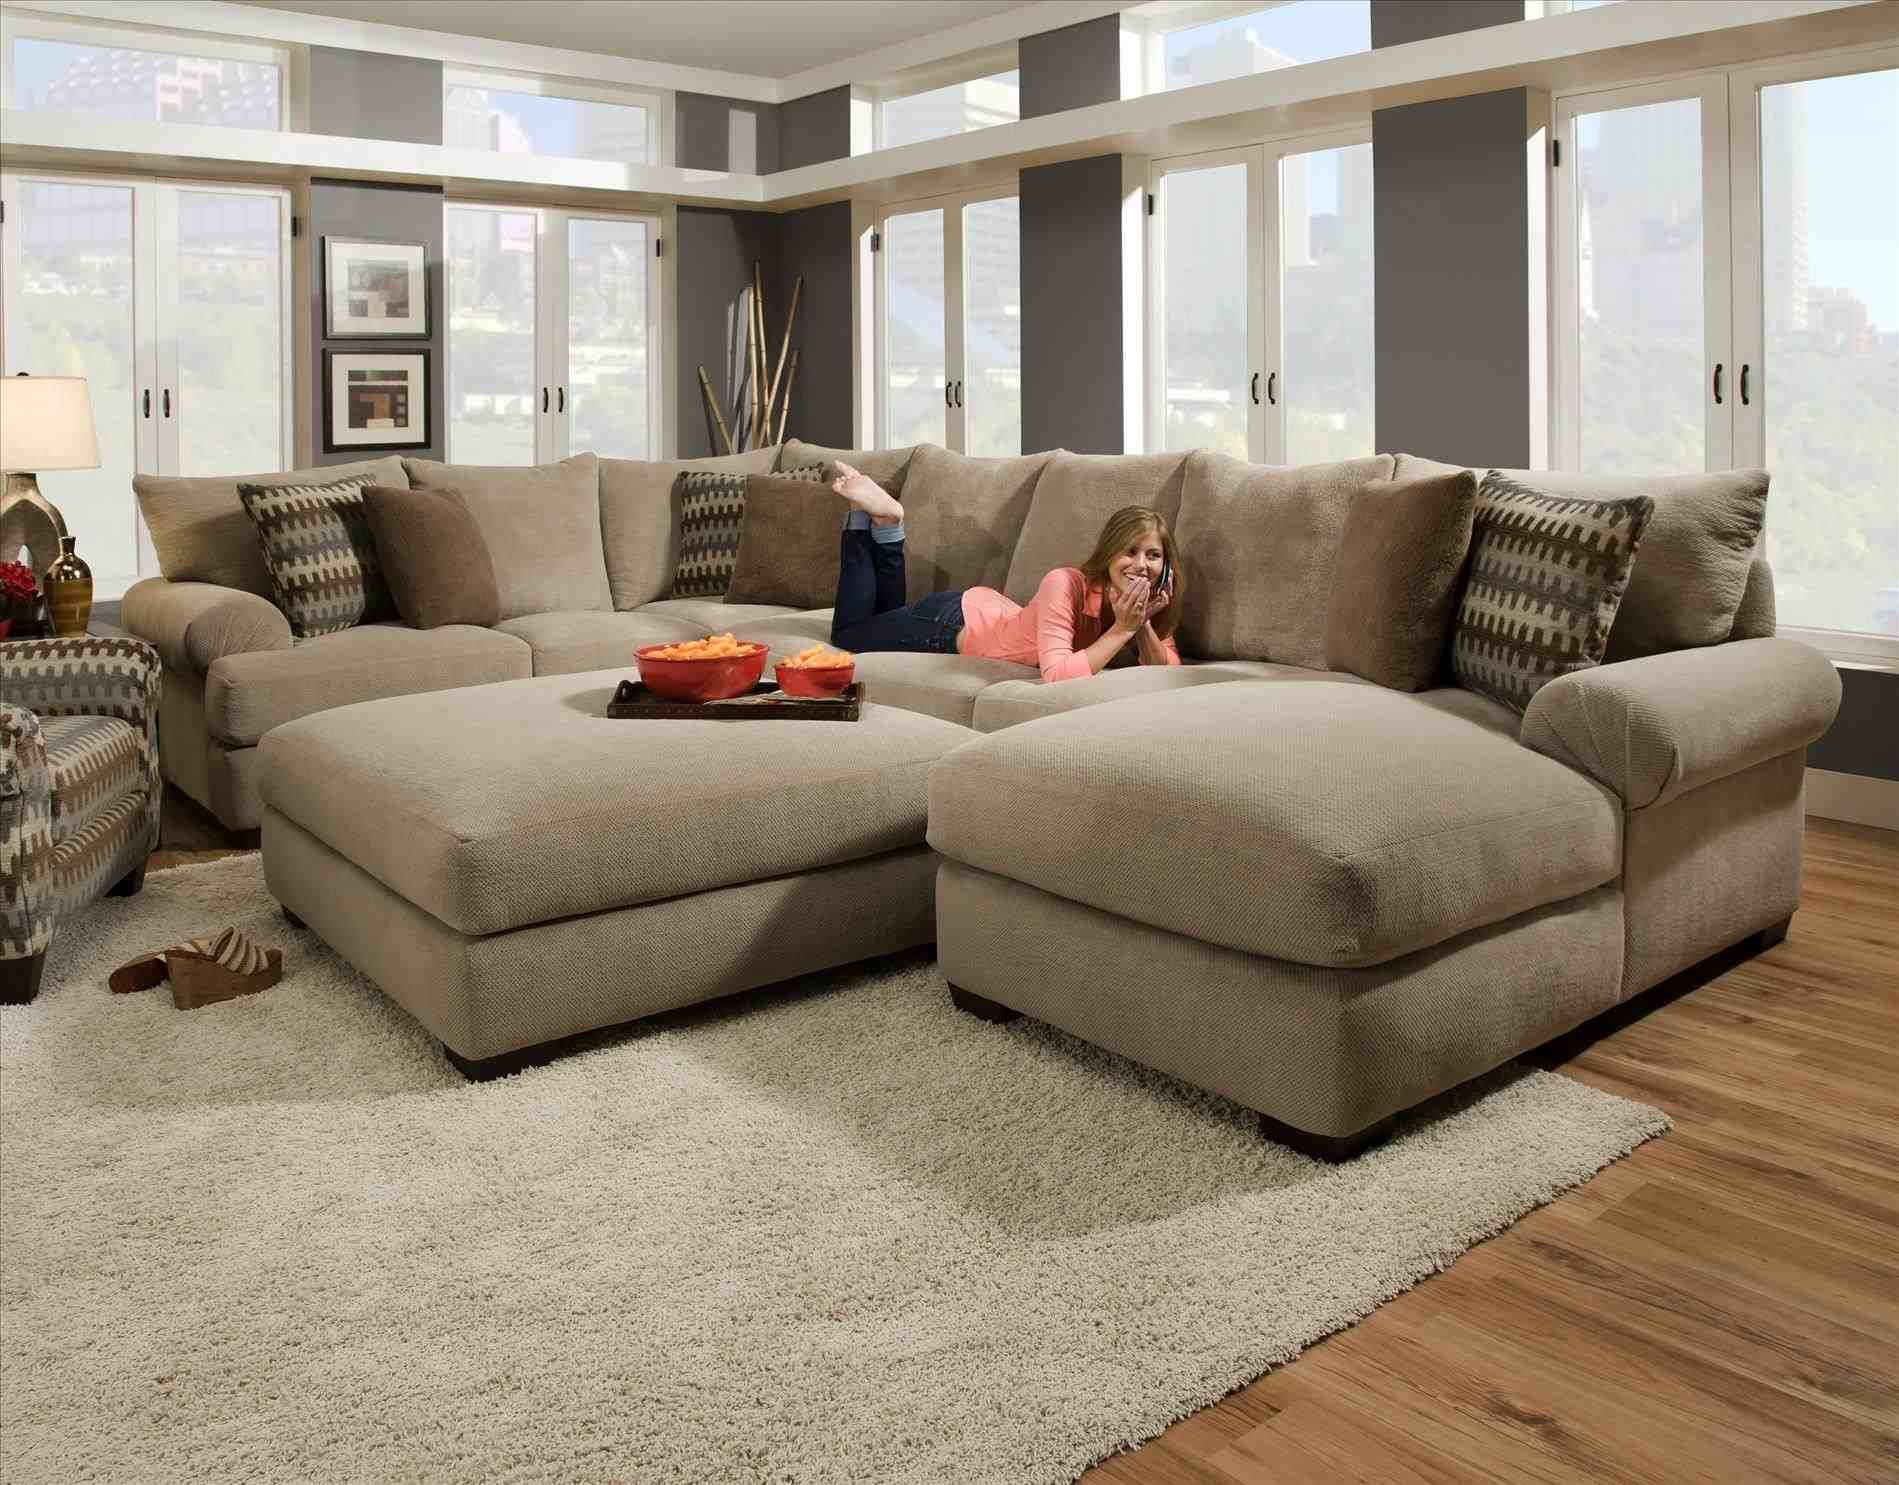 Best Cheap Sectionals Big Lots インテリア ソファー 400 x 300